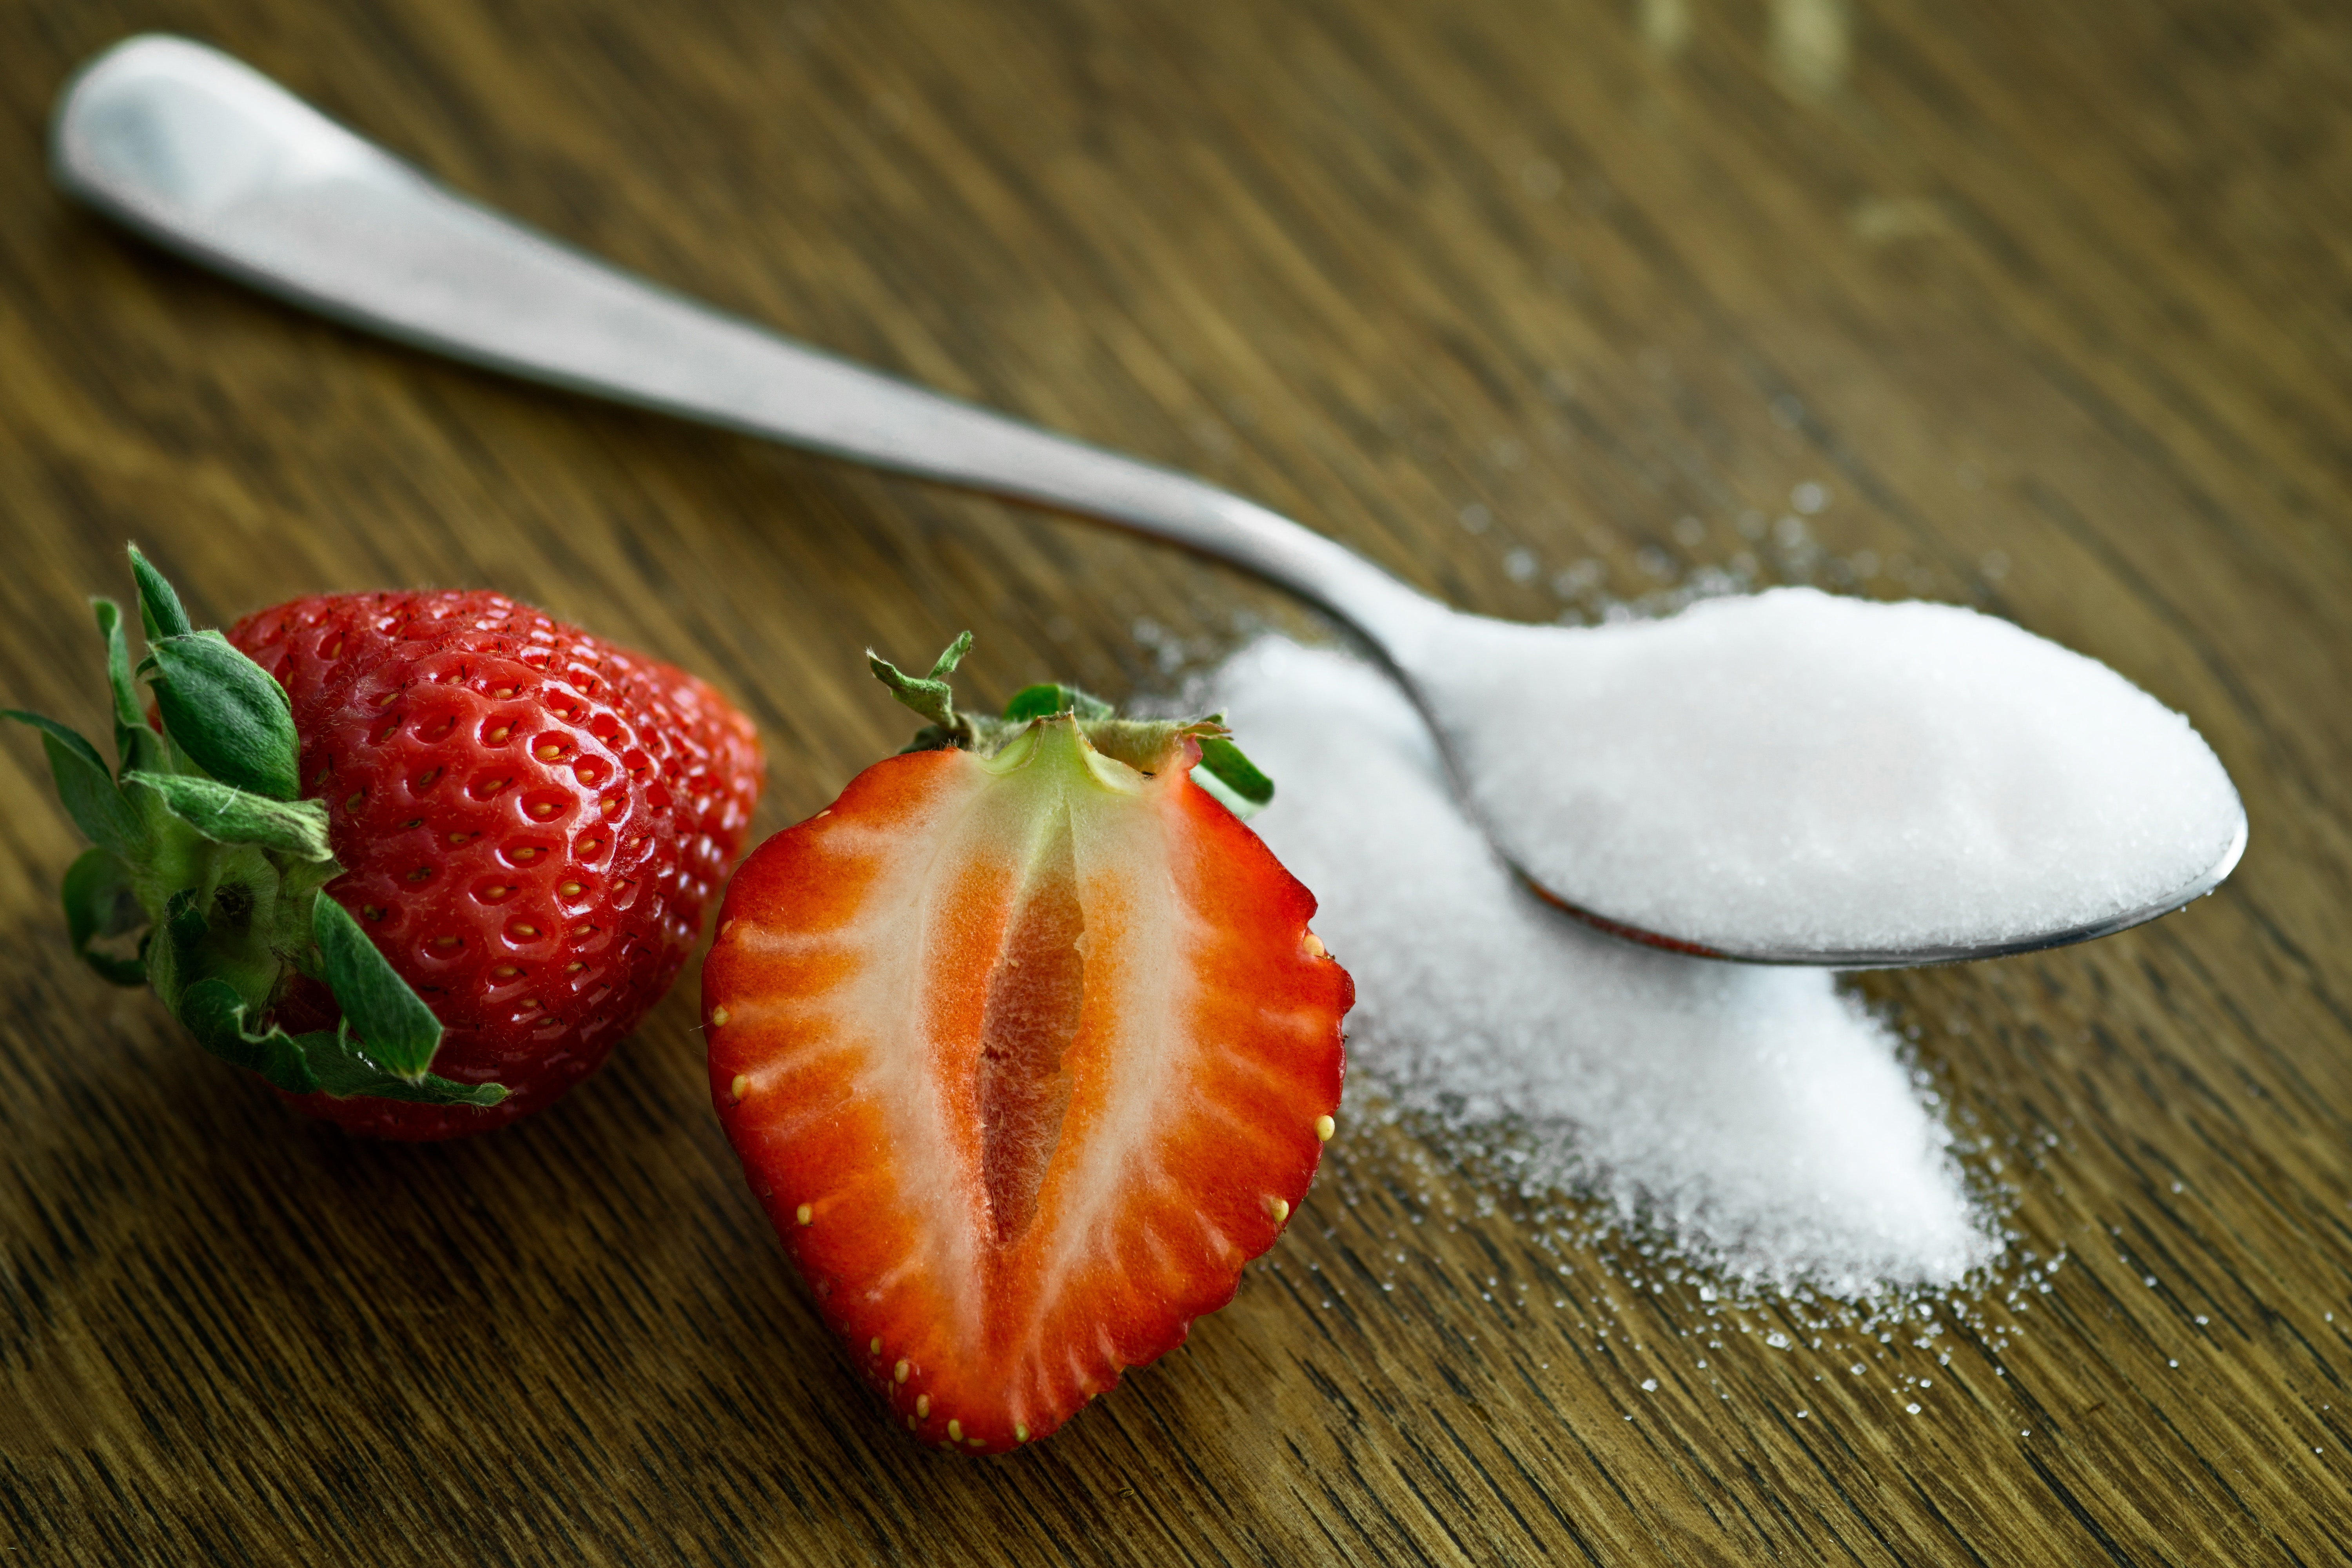 Strawberry Beside Spoon of Sugar, Still life, Strawberries, Spoon, Sliced, HQ Photo